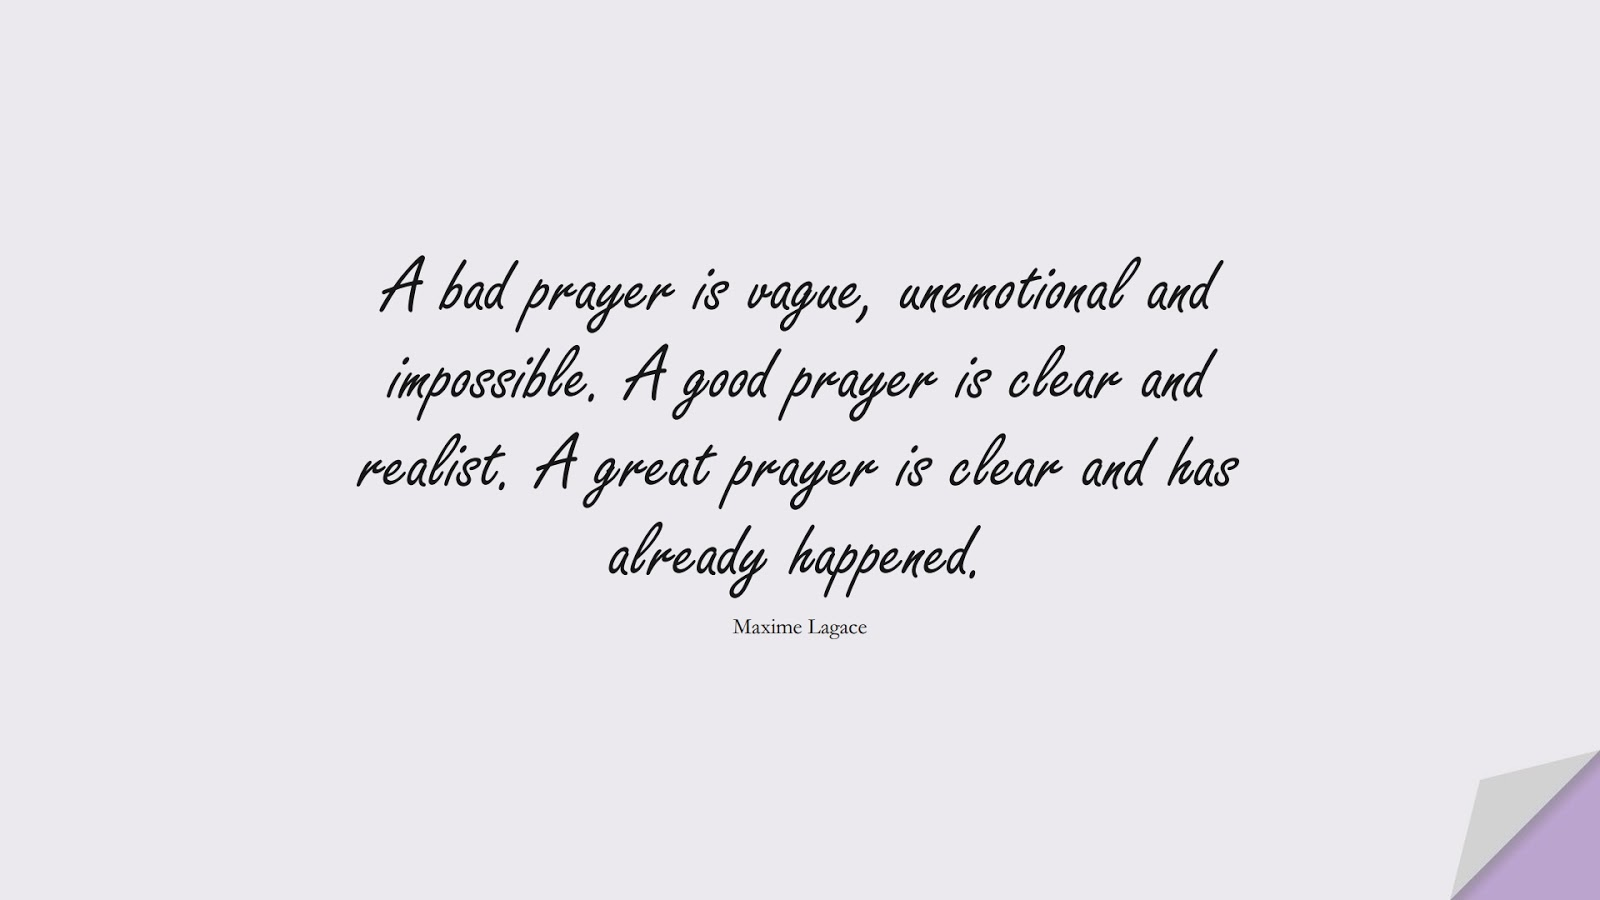 A bad prayer is vague, unemotional and impossible. A good prayer is clear and realist. A great prayer is clear and has already happened. (Maxime Lagace);  #HopeQuotes